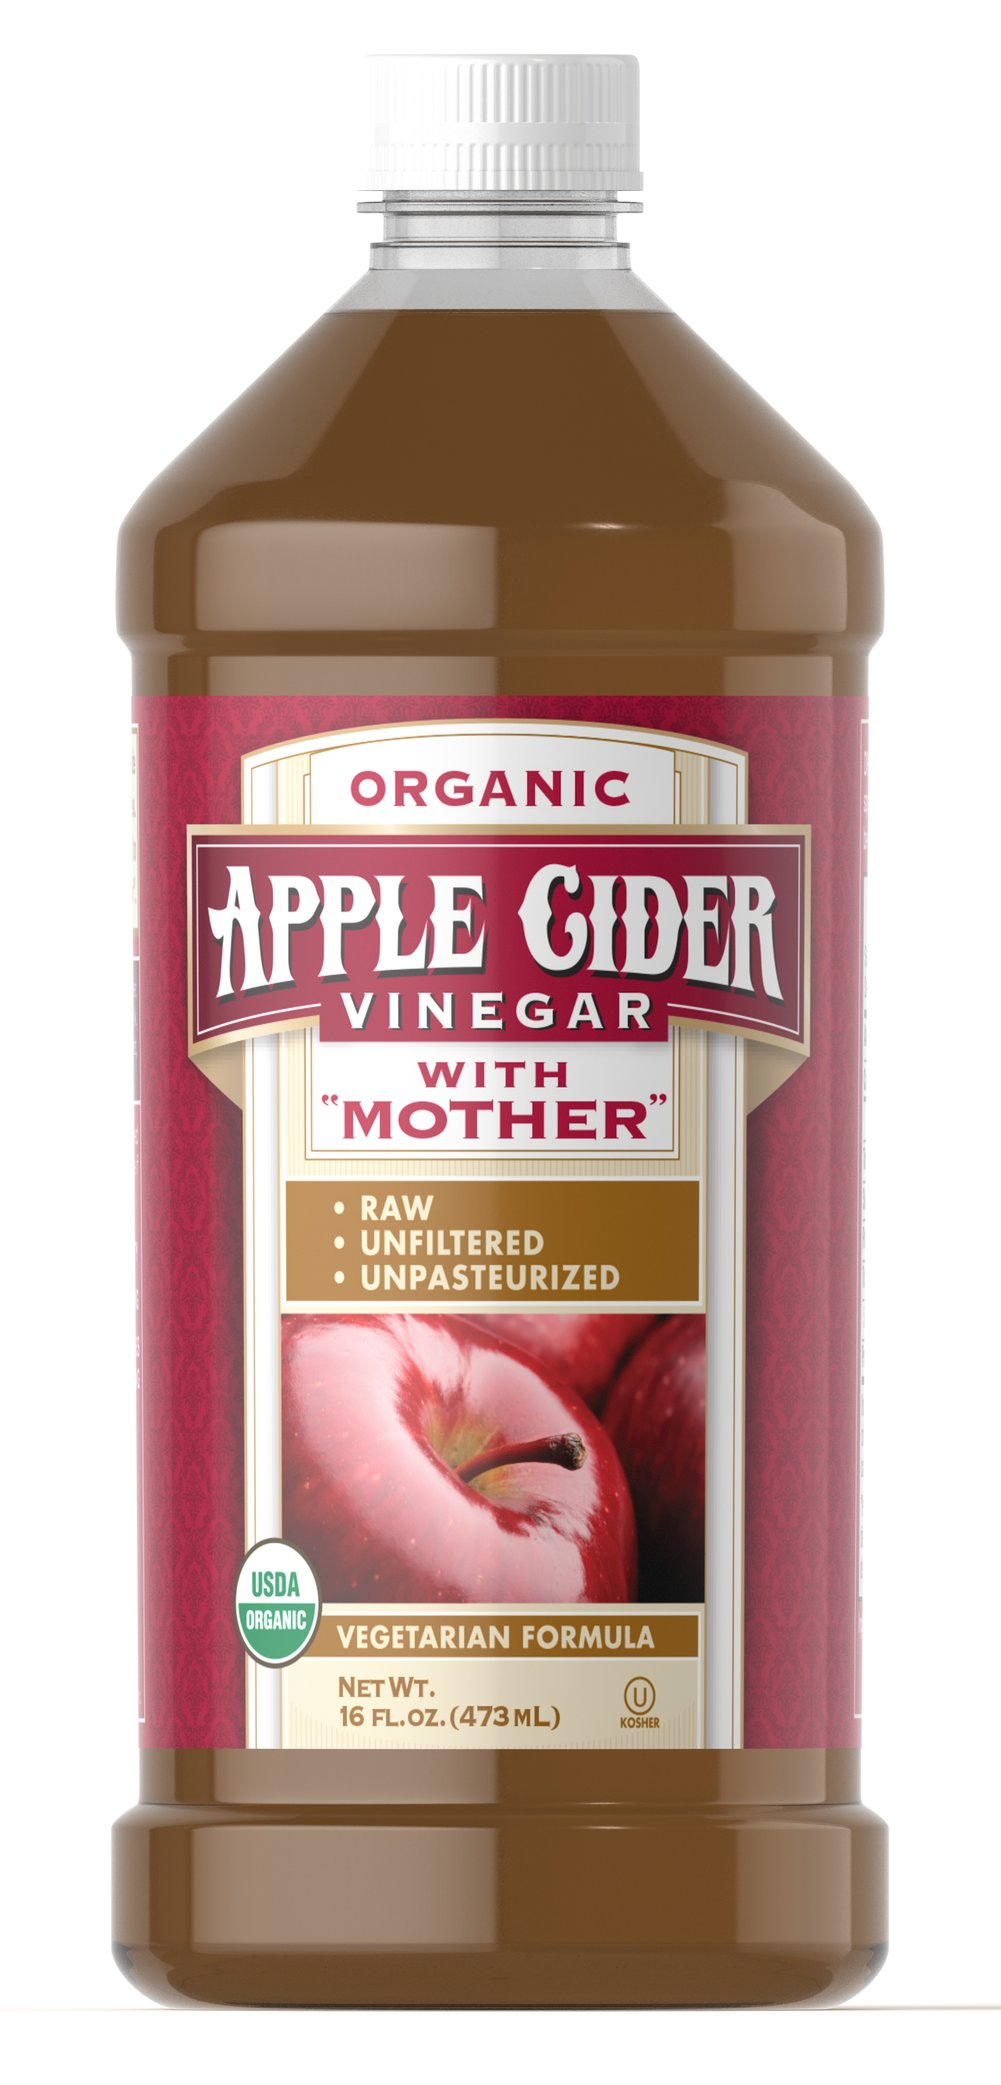 "Organic Apple Cider Vinegar with ""Mother"" <p>For over 2000 years, vinegar has been used for a variety of culinary and traditional purposes. This apple cider vinegar is unpasteurized and unfiltered, so it contains the naturally formed constituents referred to as the ""mother."" Only certified organic apples are used in our Organic Apple Cider Vinegar so you can feel good about using it.</p><p></p><p></p> 16 oz Liquid  $9.99"